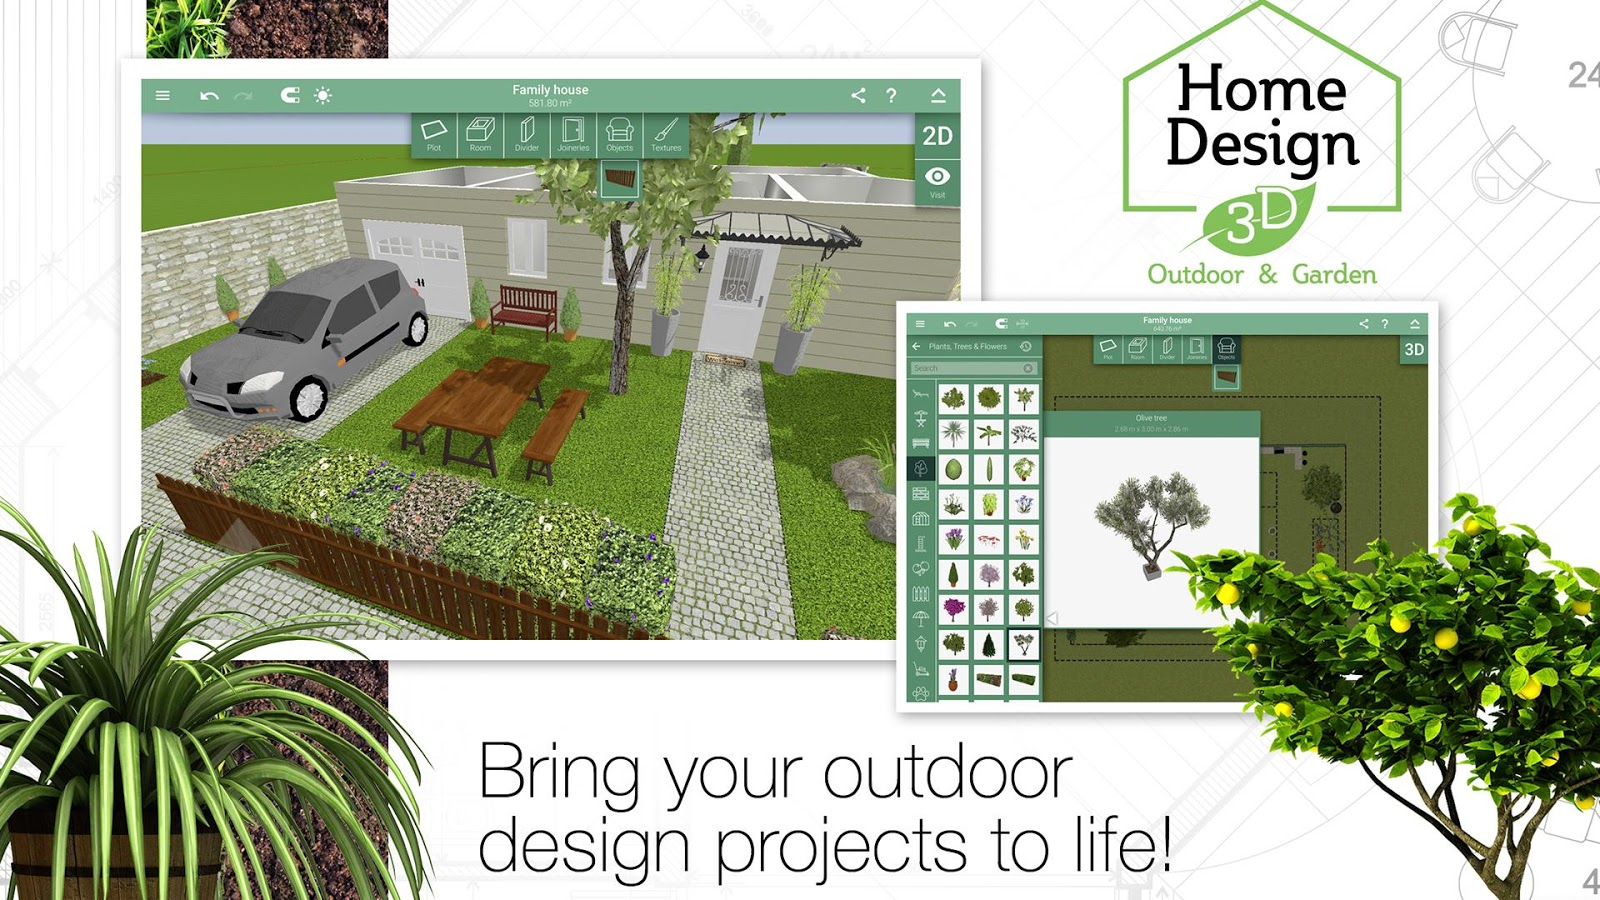 Home Design Photos home design 3d outdoor/garden - android apps on google play